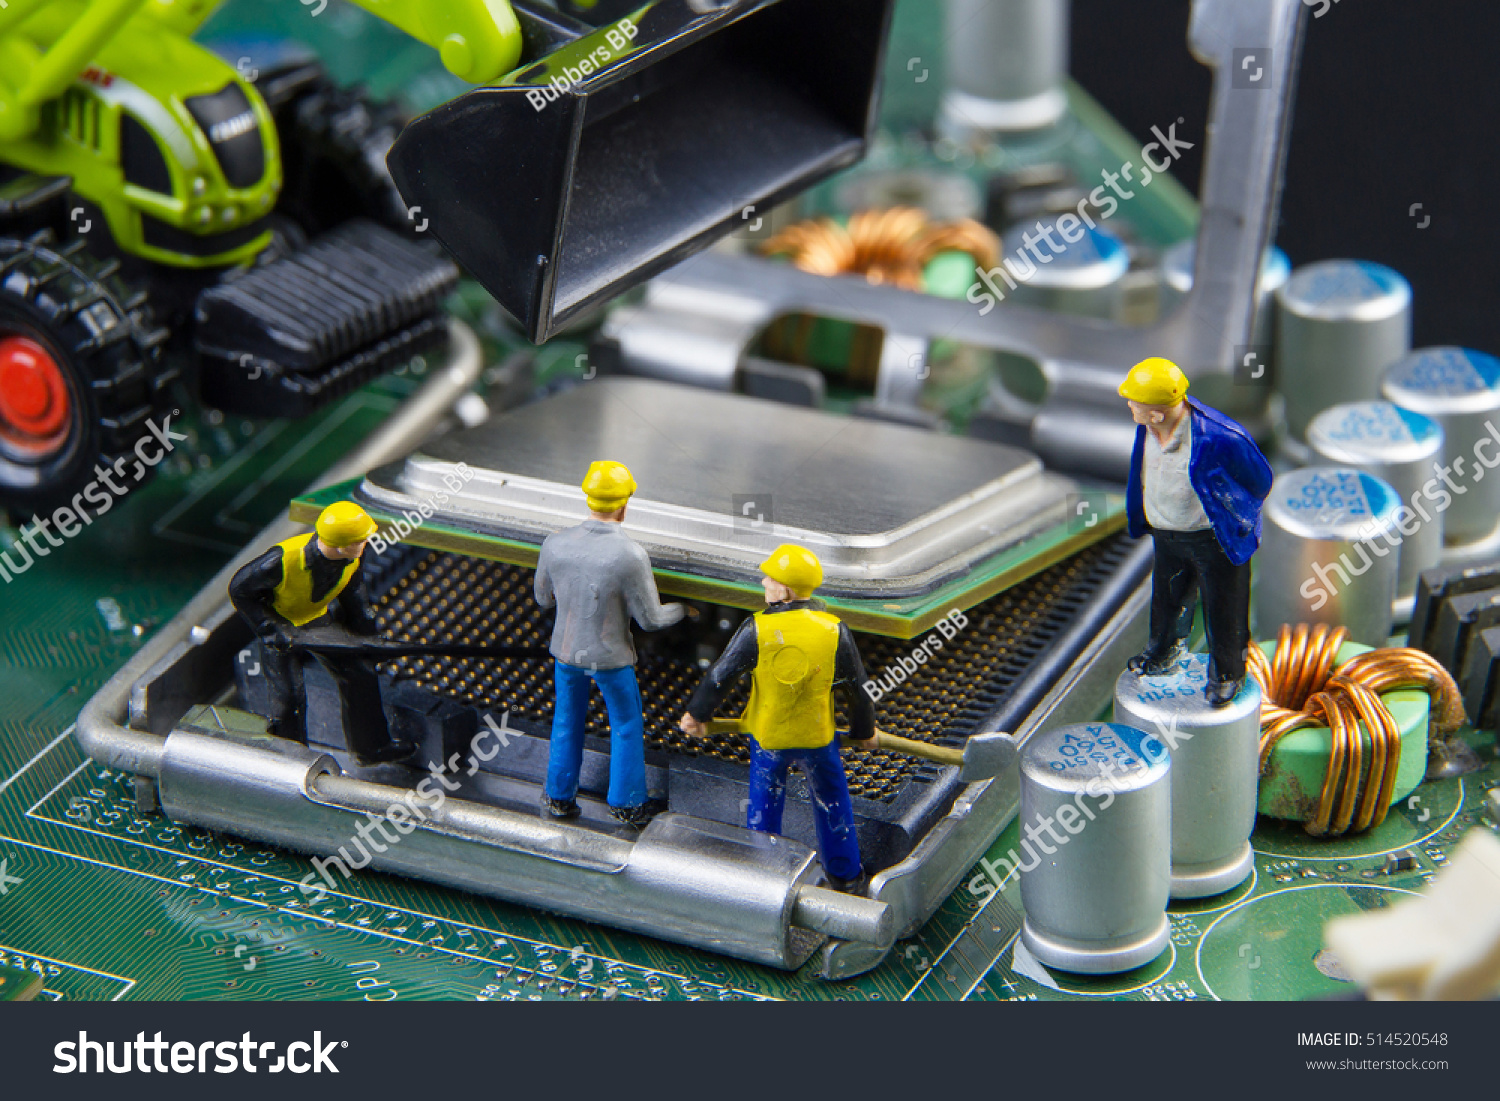 Royalty Free Tiny Toys Team Of Engineers Repairing 514520548 Stock Computer Circuit Main Board Photography Image Mother Computercomputer Equipmentcomputer Repair Concept Photo